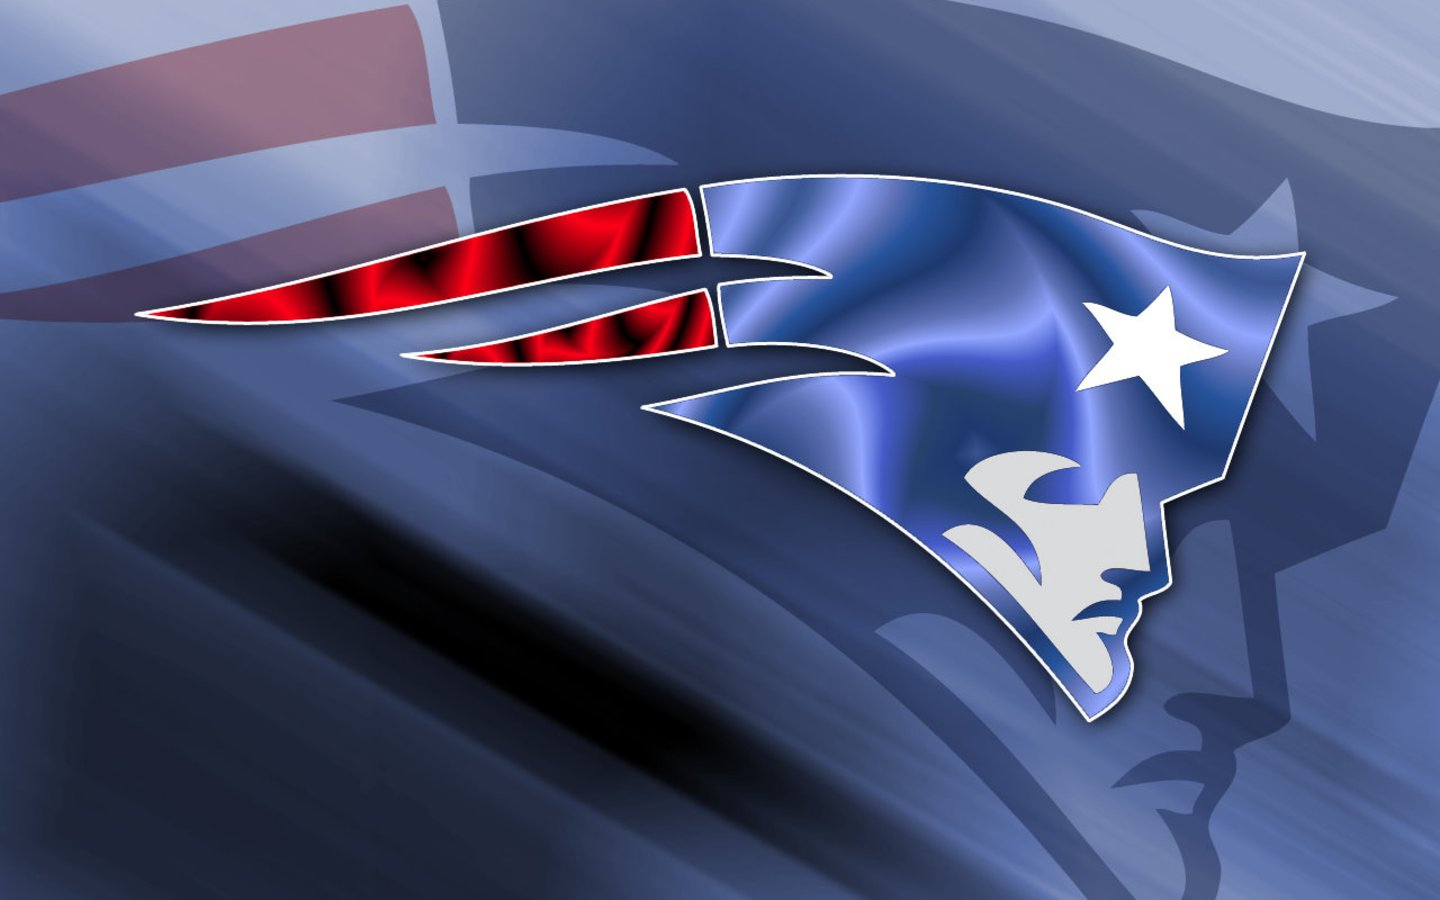 New england patriots computer wallpaper 55963 1440x900 px new england patriots computer wallpaper 55963 voltagebd Gallery